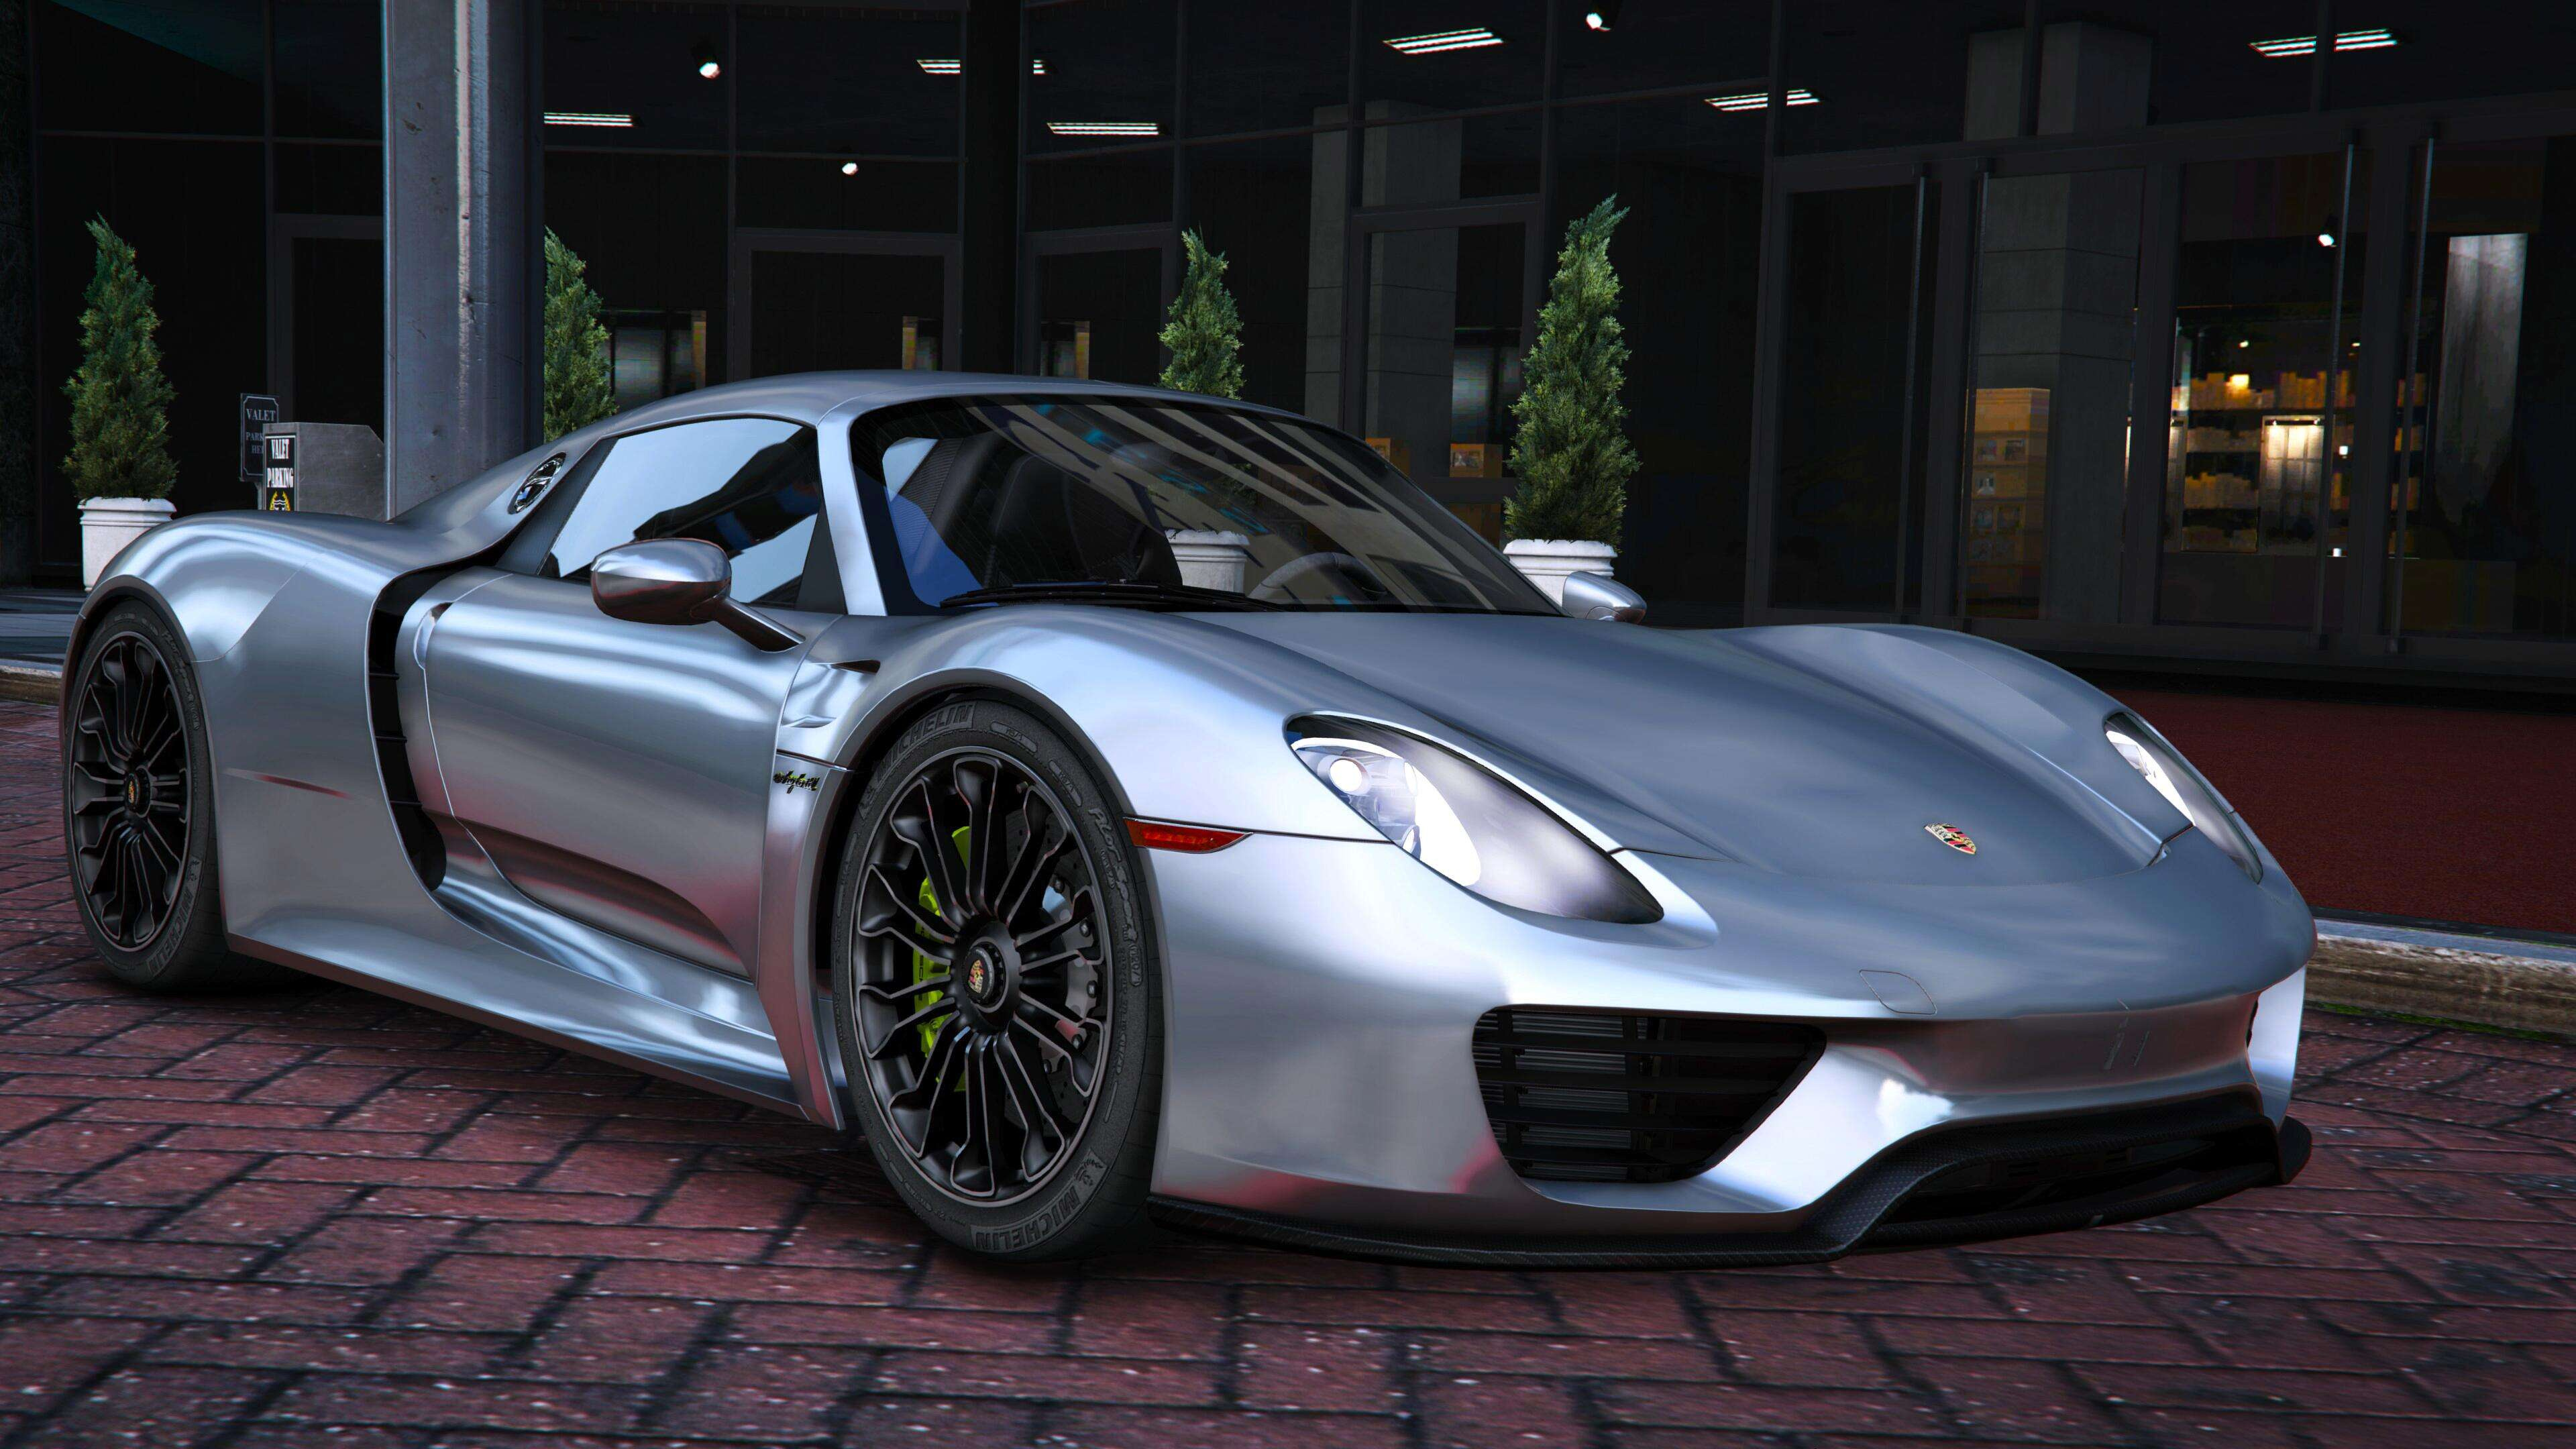 Police Car 4k Wallpaper 2015 Porsche 918 Spyder Amp Weissach Kit Add On Real